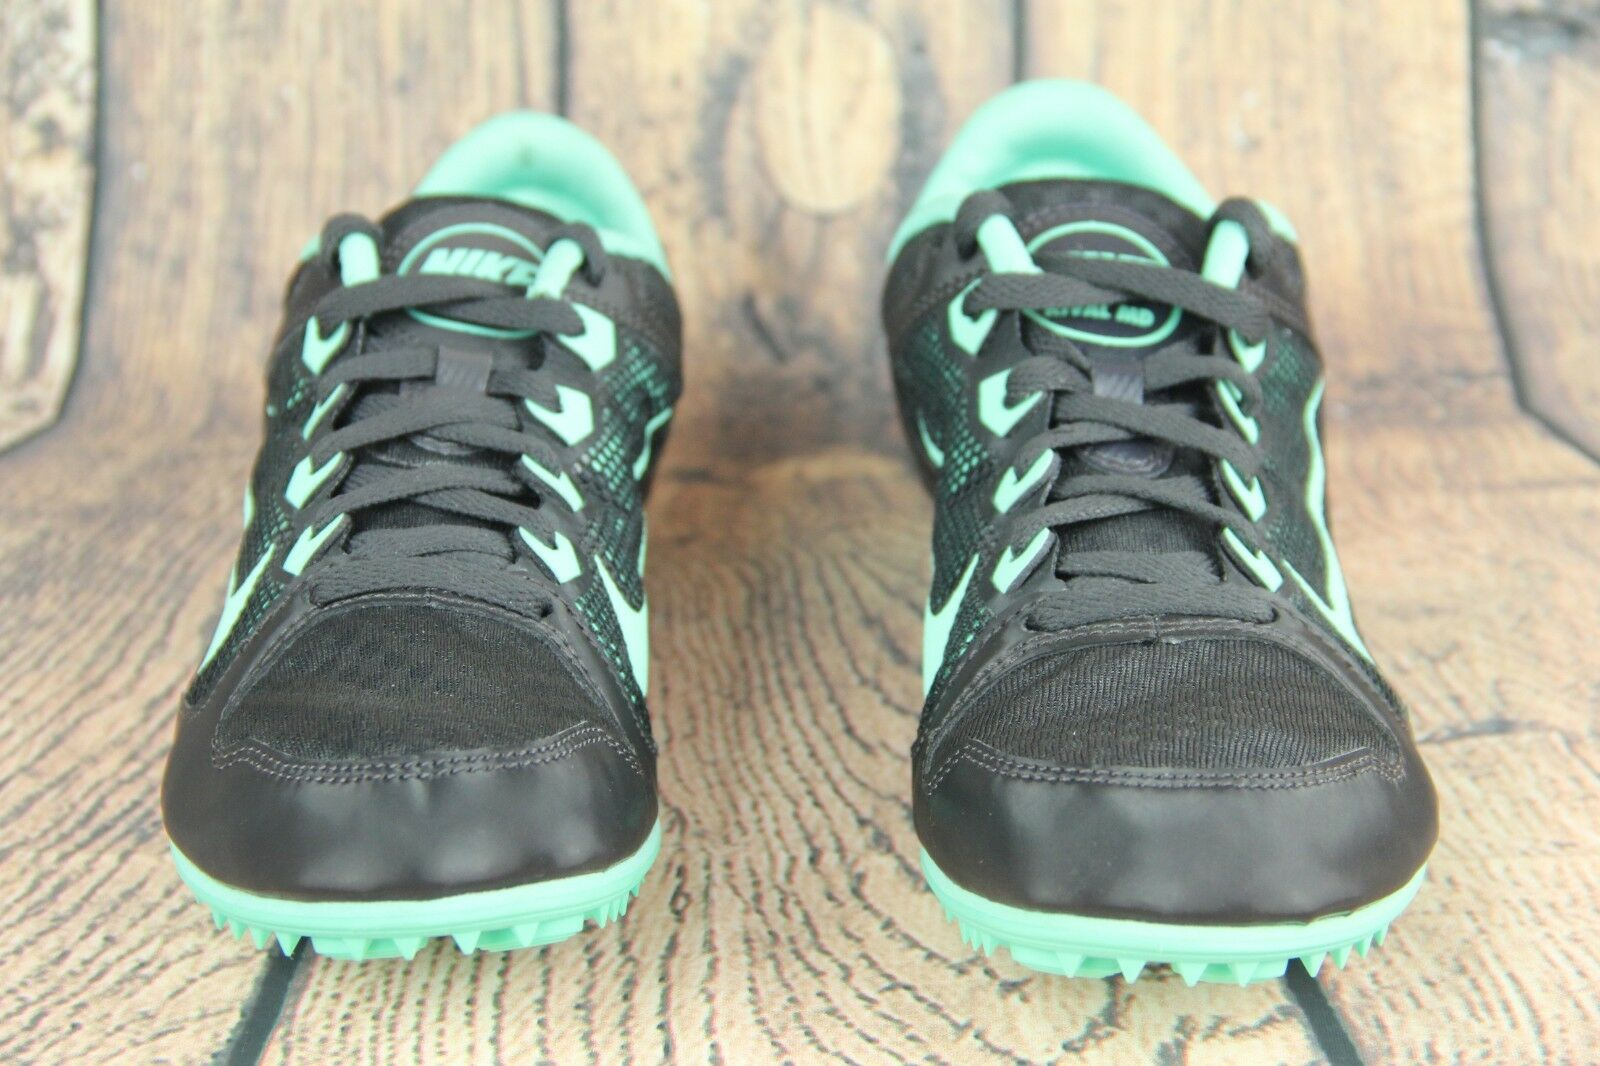 Nike Womens shoes Zoom Rival MD Track Cleats Black Green 615982-030 Size US 8